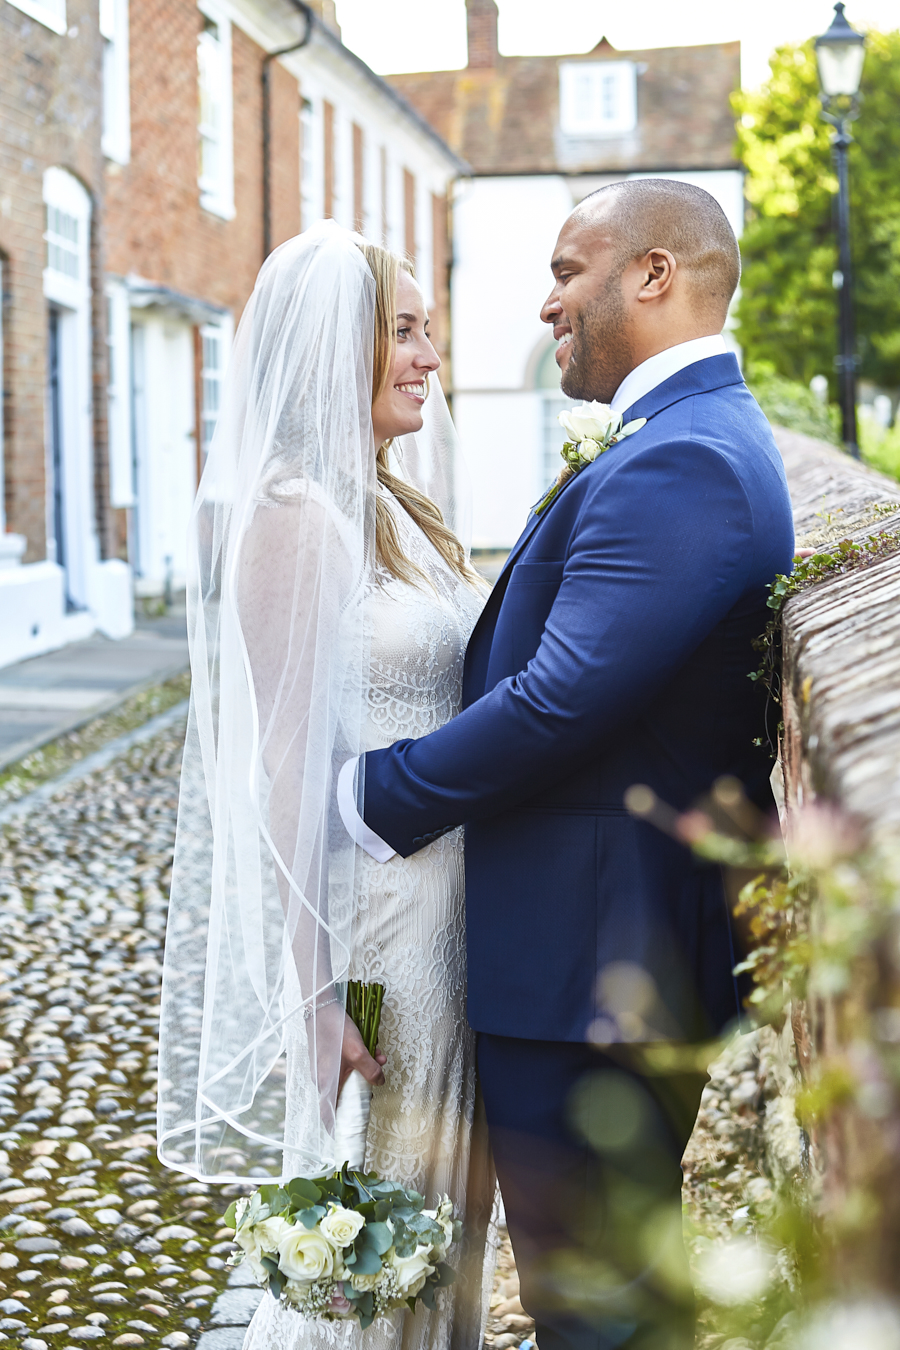 Sarah & Sansui's classic and timeless wedding in Rye, with Morris Mully Photography (31)